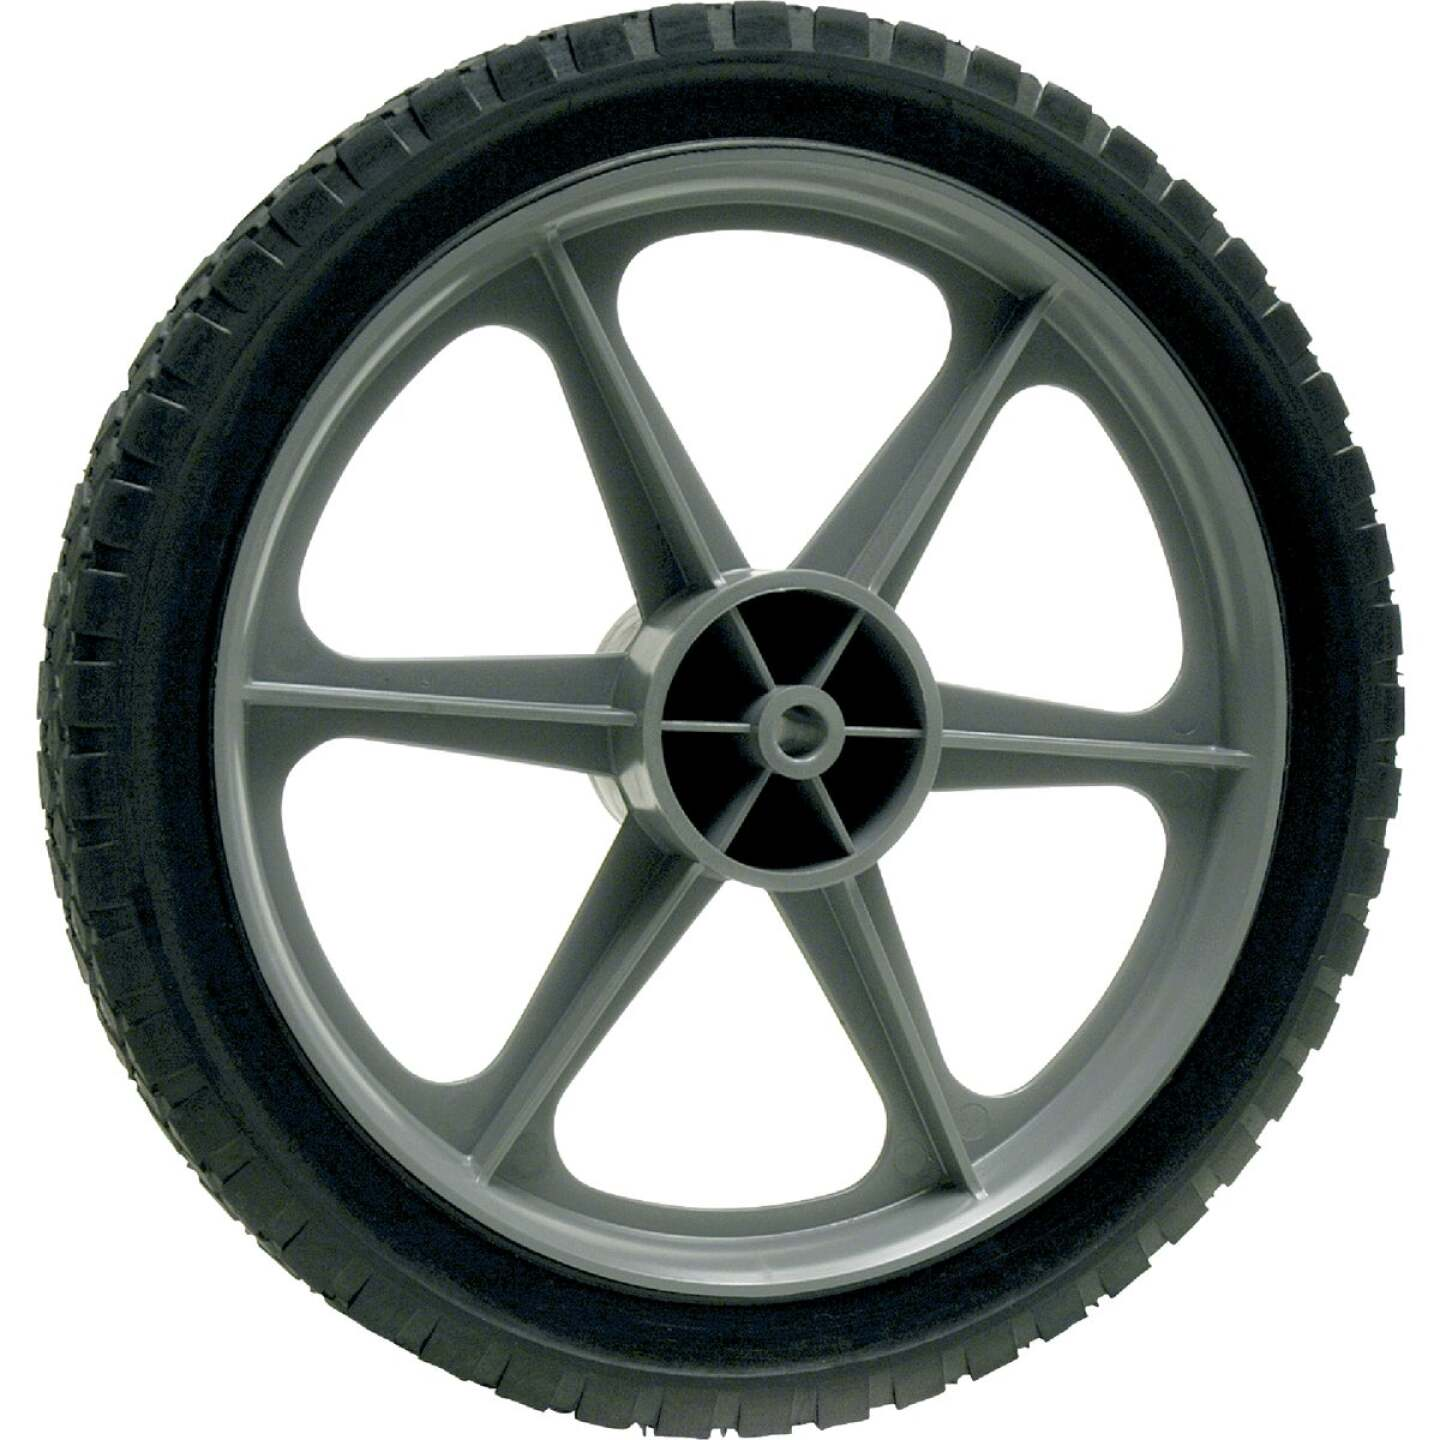 Arnold 14 In. x 1.75 In. Plastic Spoke Wheel Image 1